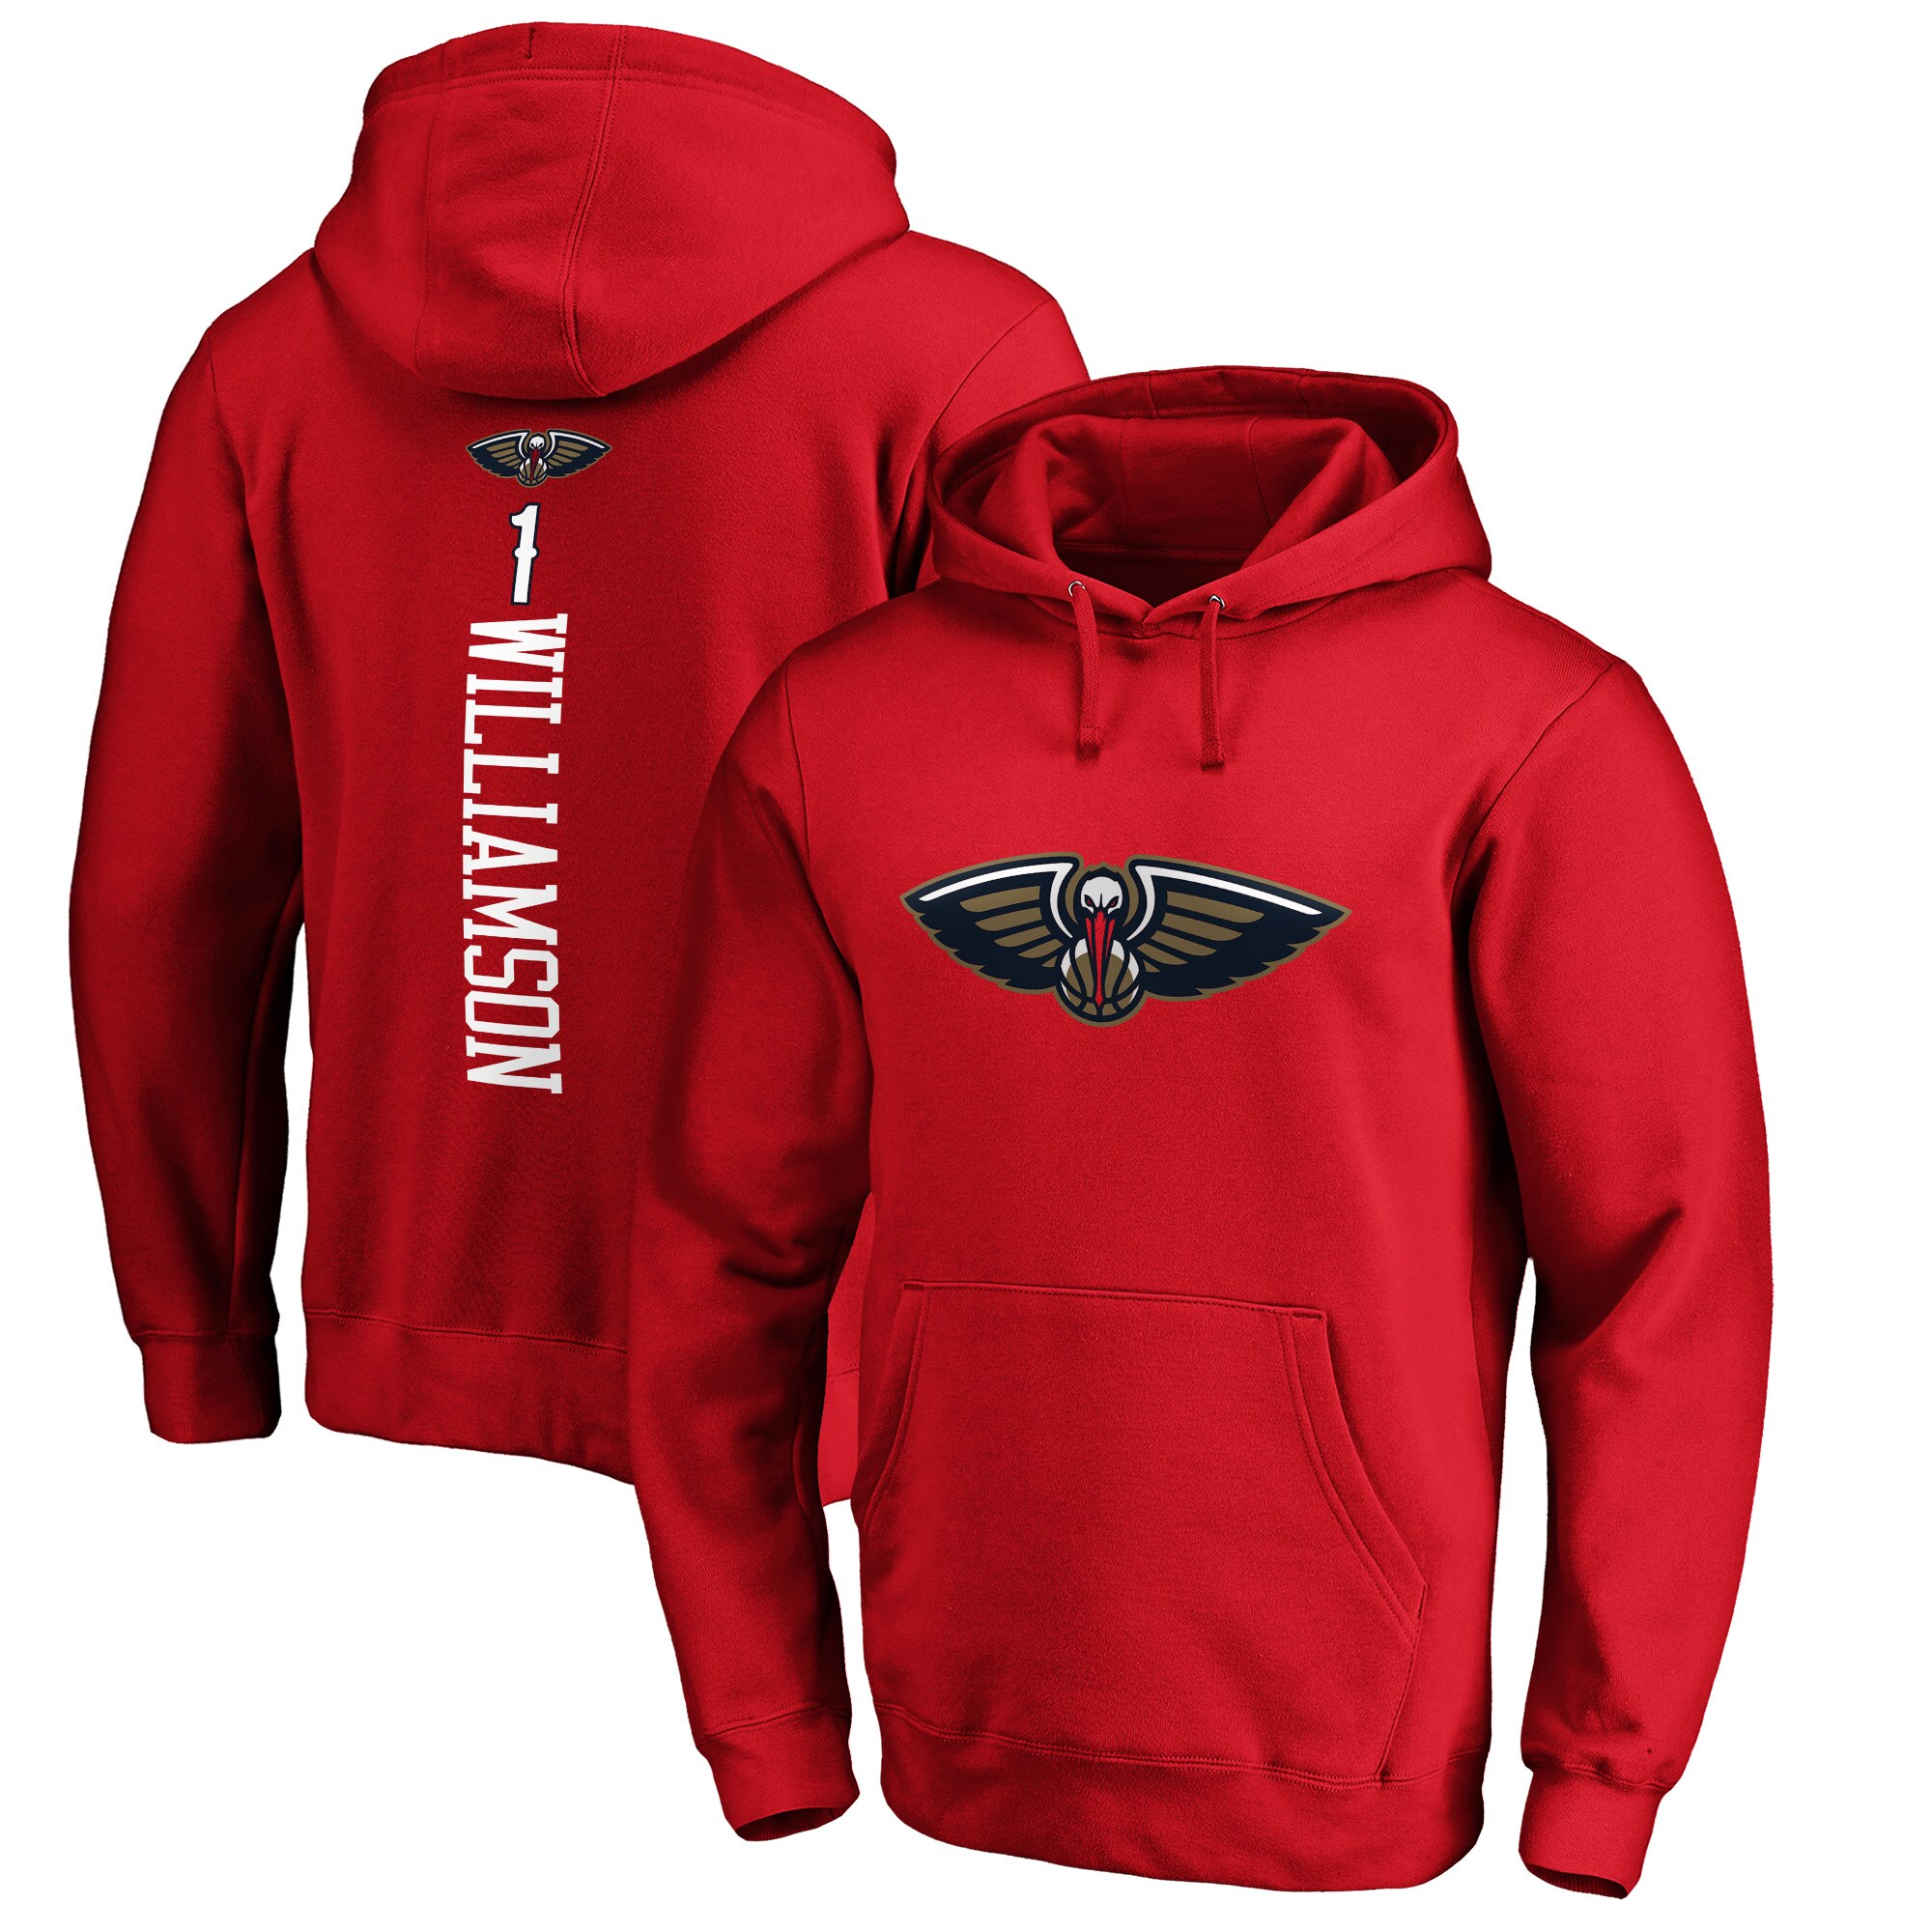 Zion Williamson New Orleans Pelicans Fanatics Branded Playmaker Name & Number Pullover Hoodie - Red